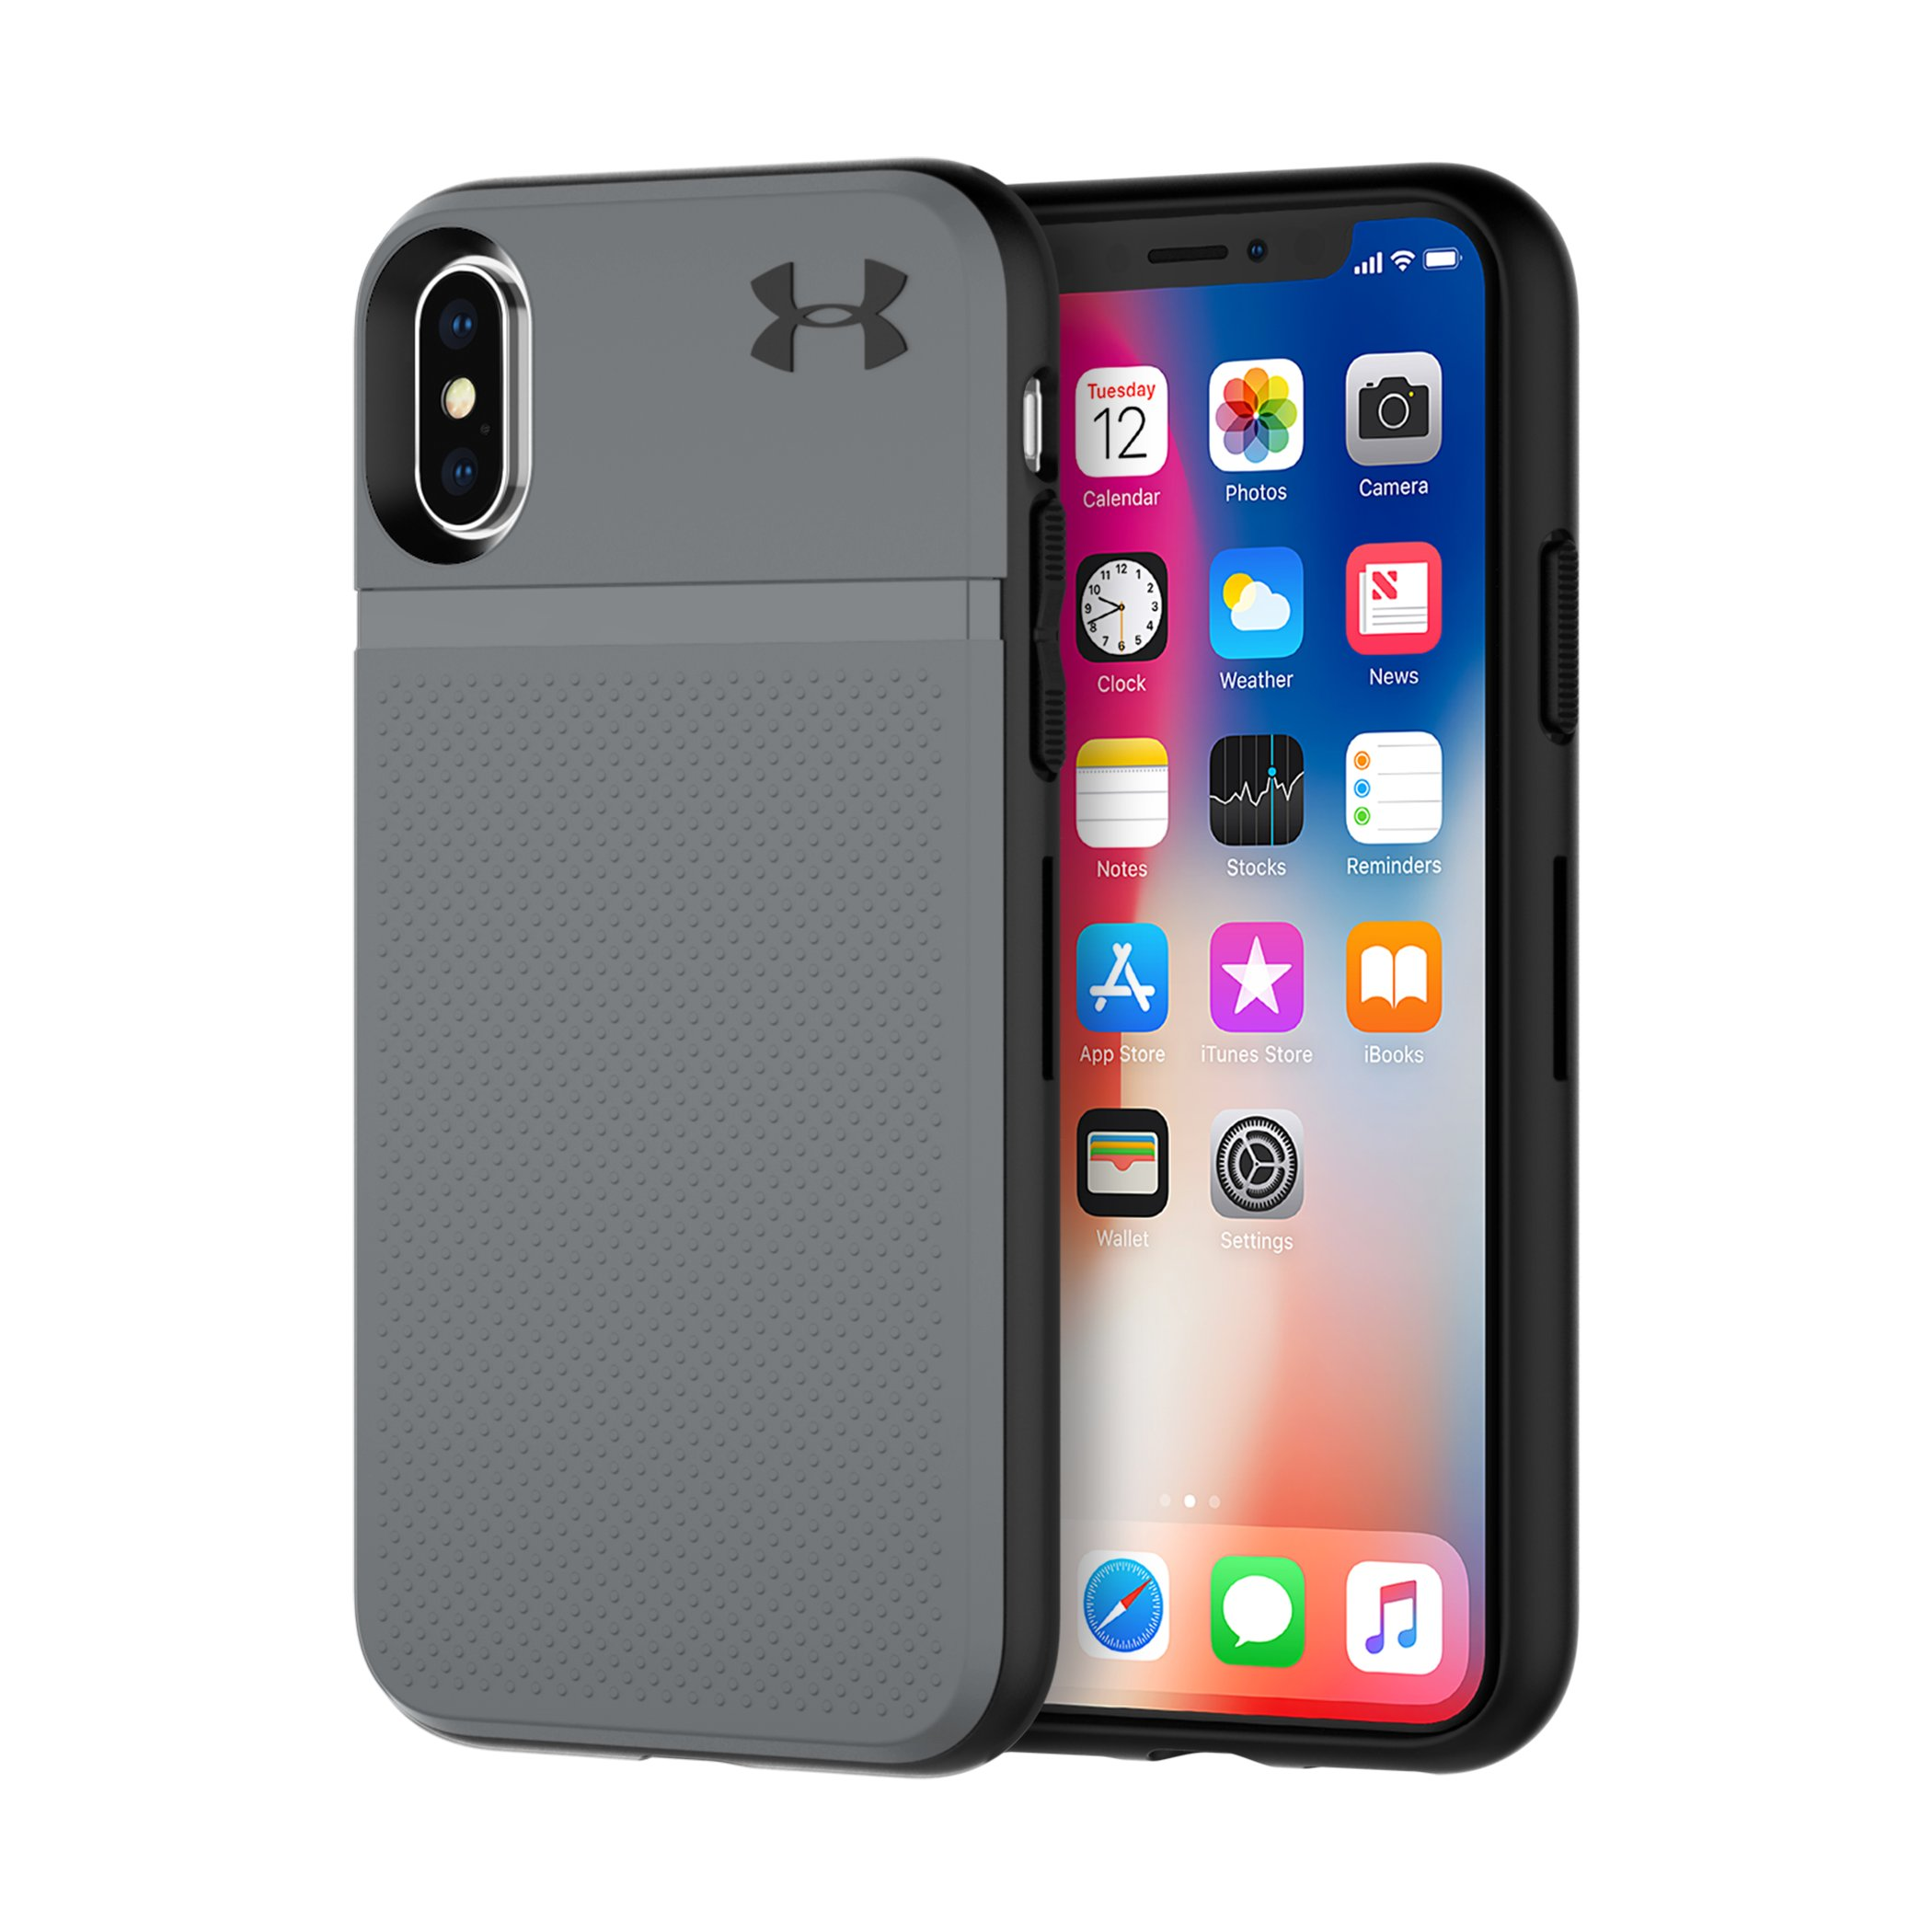 UA Protect Stash Case for iPhone X 3 Colors $44.99